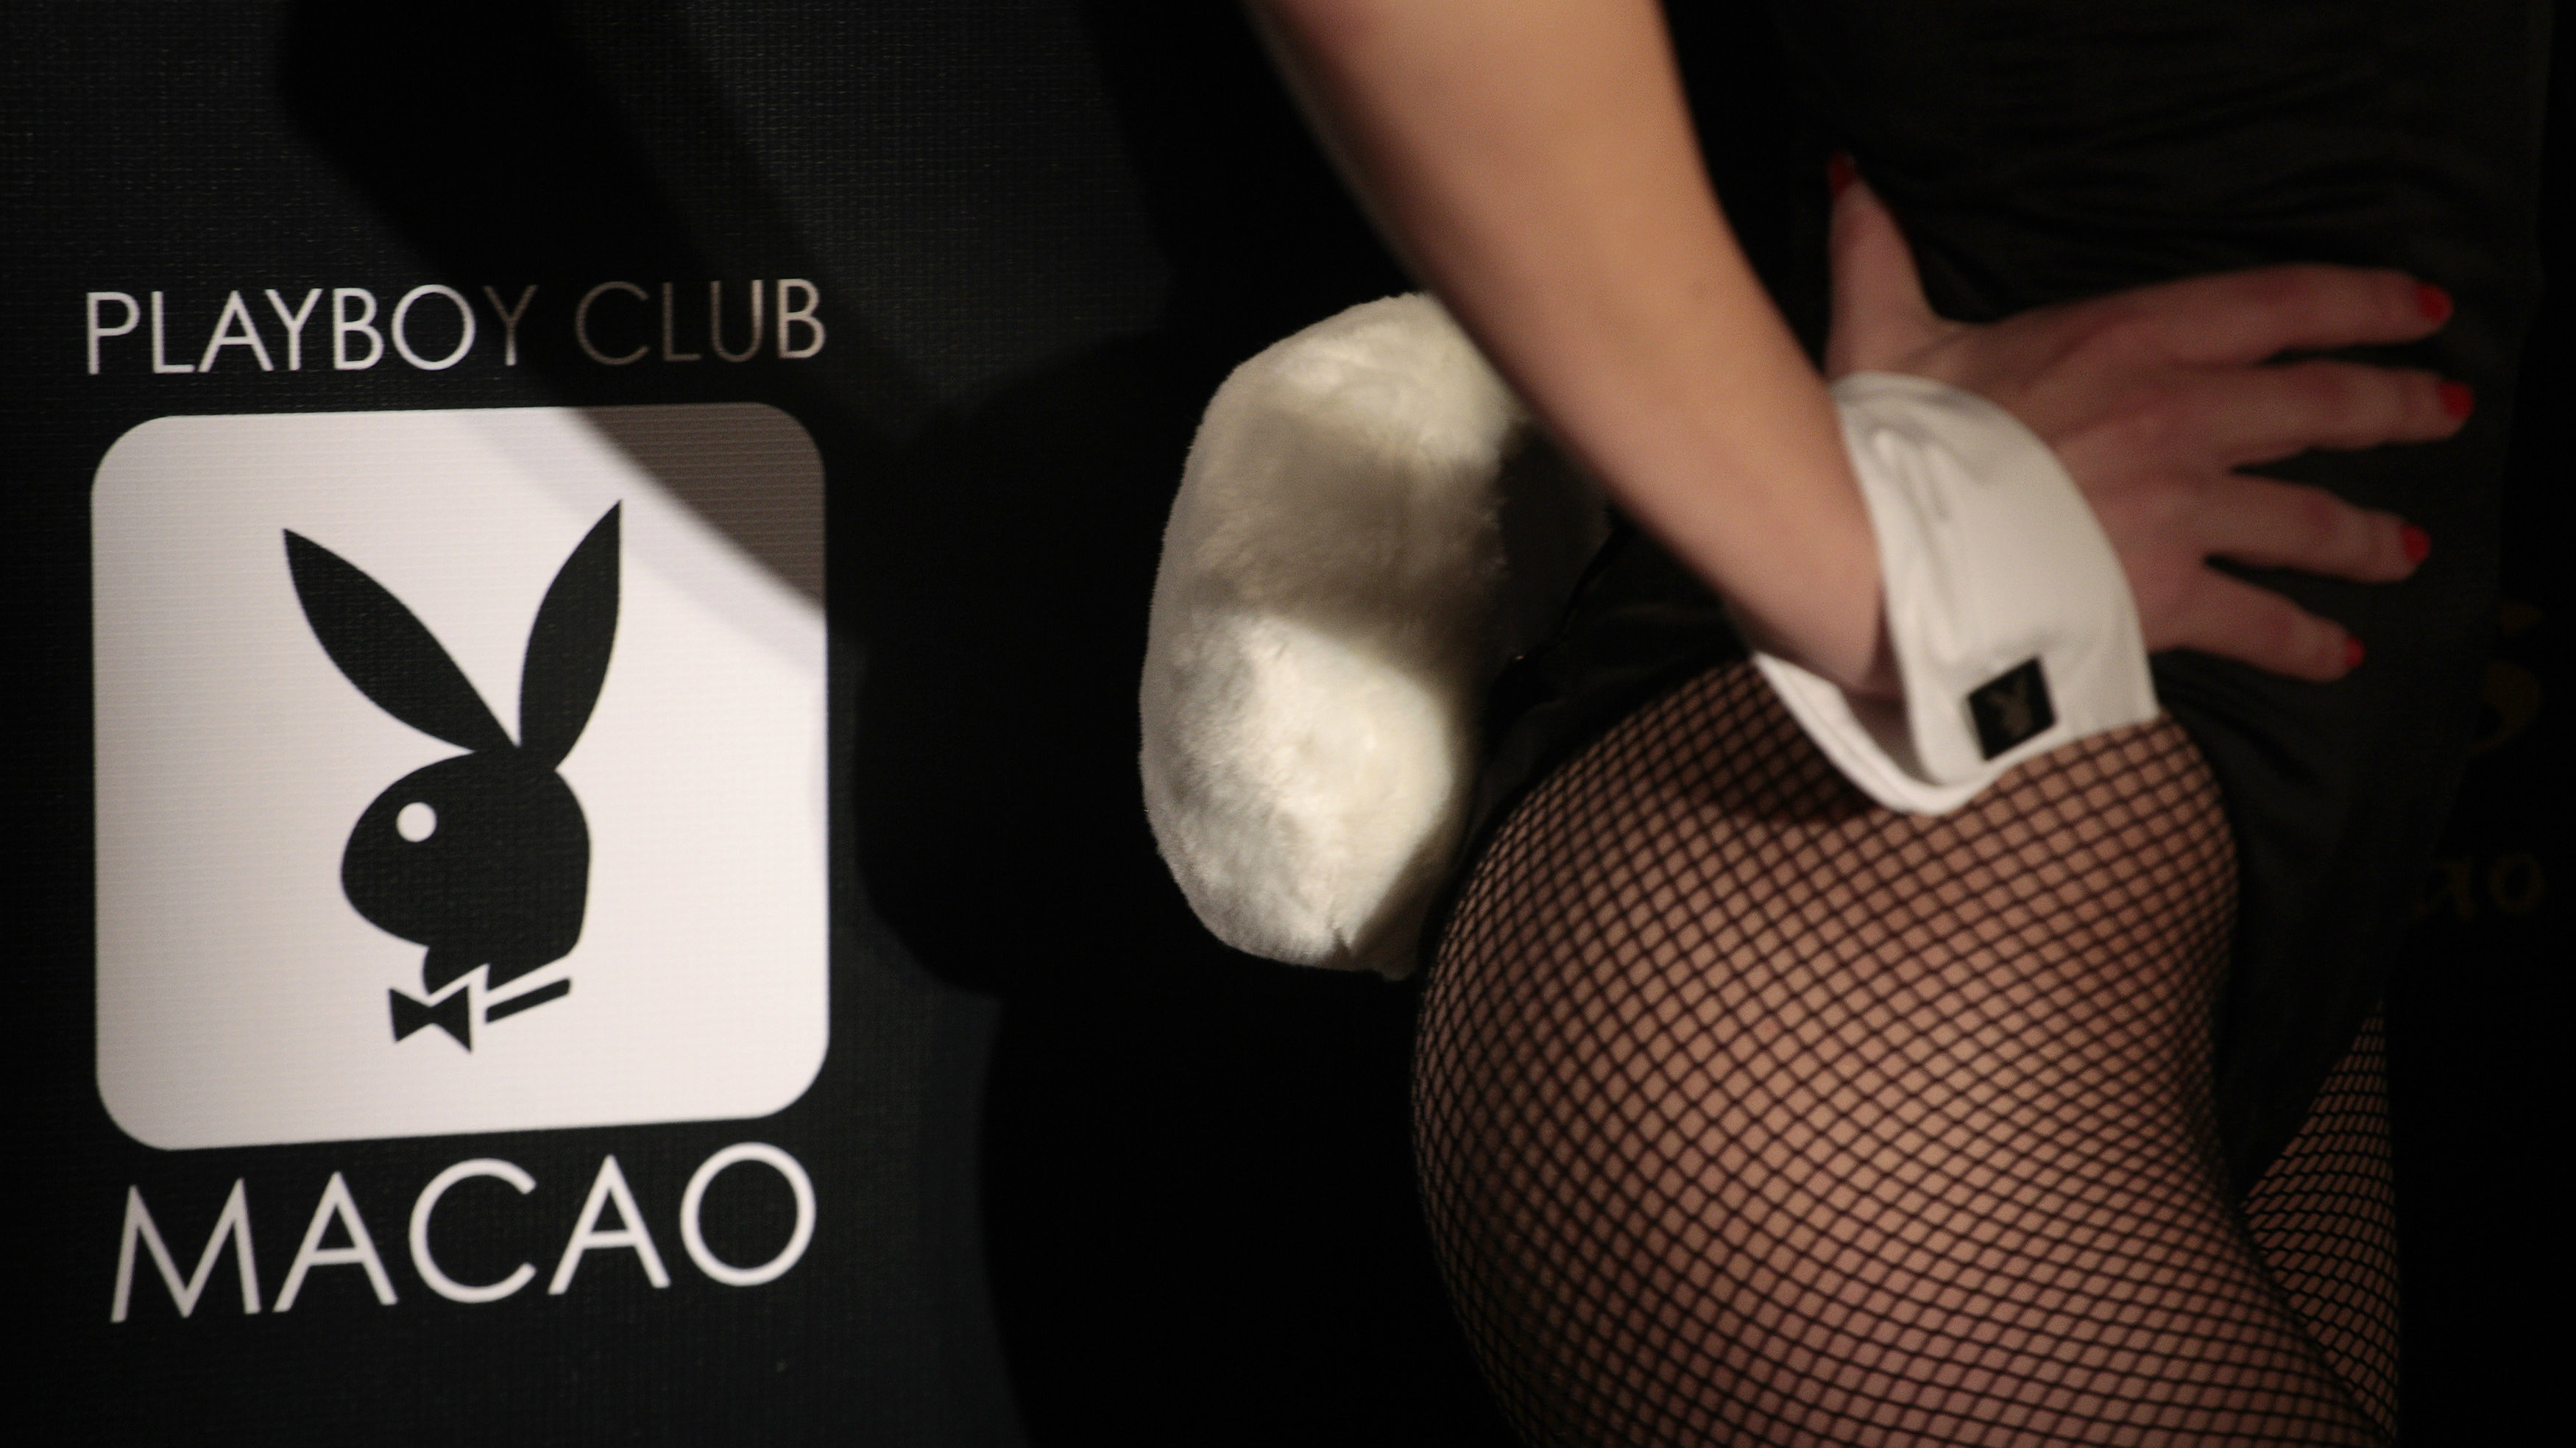 A Playboy Club Macao Logo is pictured during a promotional event for the upcoming opening.